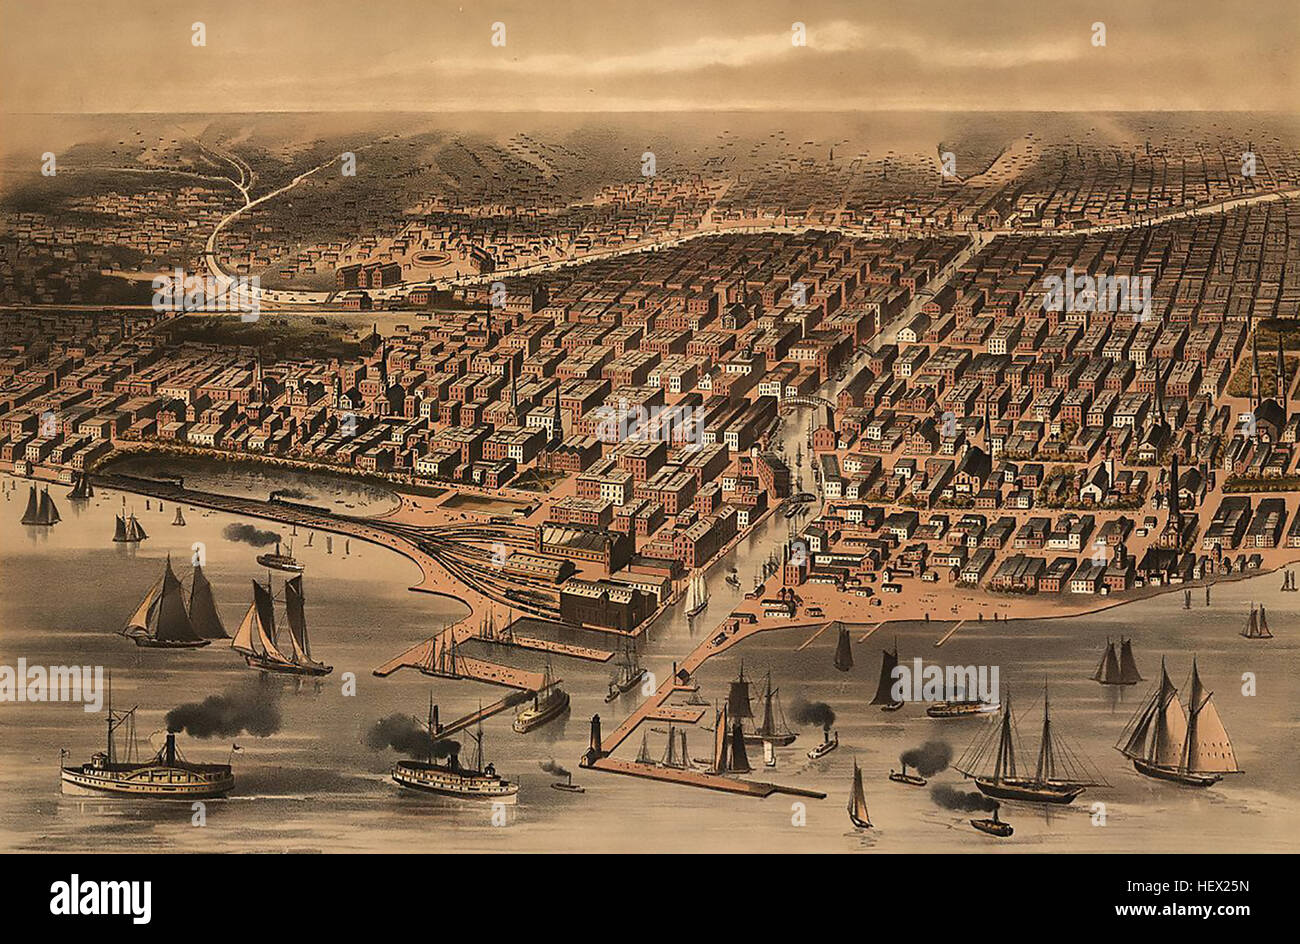 CHICAGO before the great fire of 1871 - Stock Image